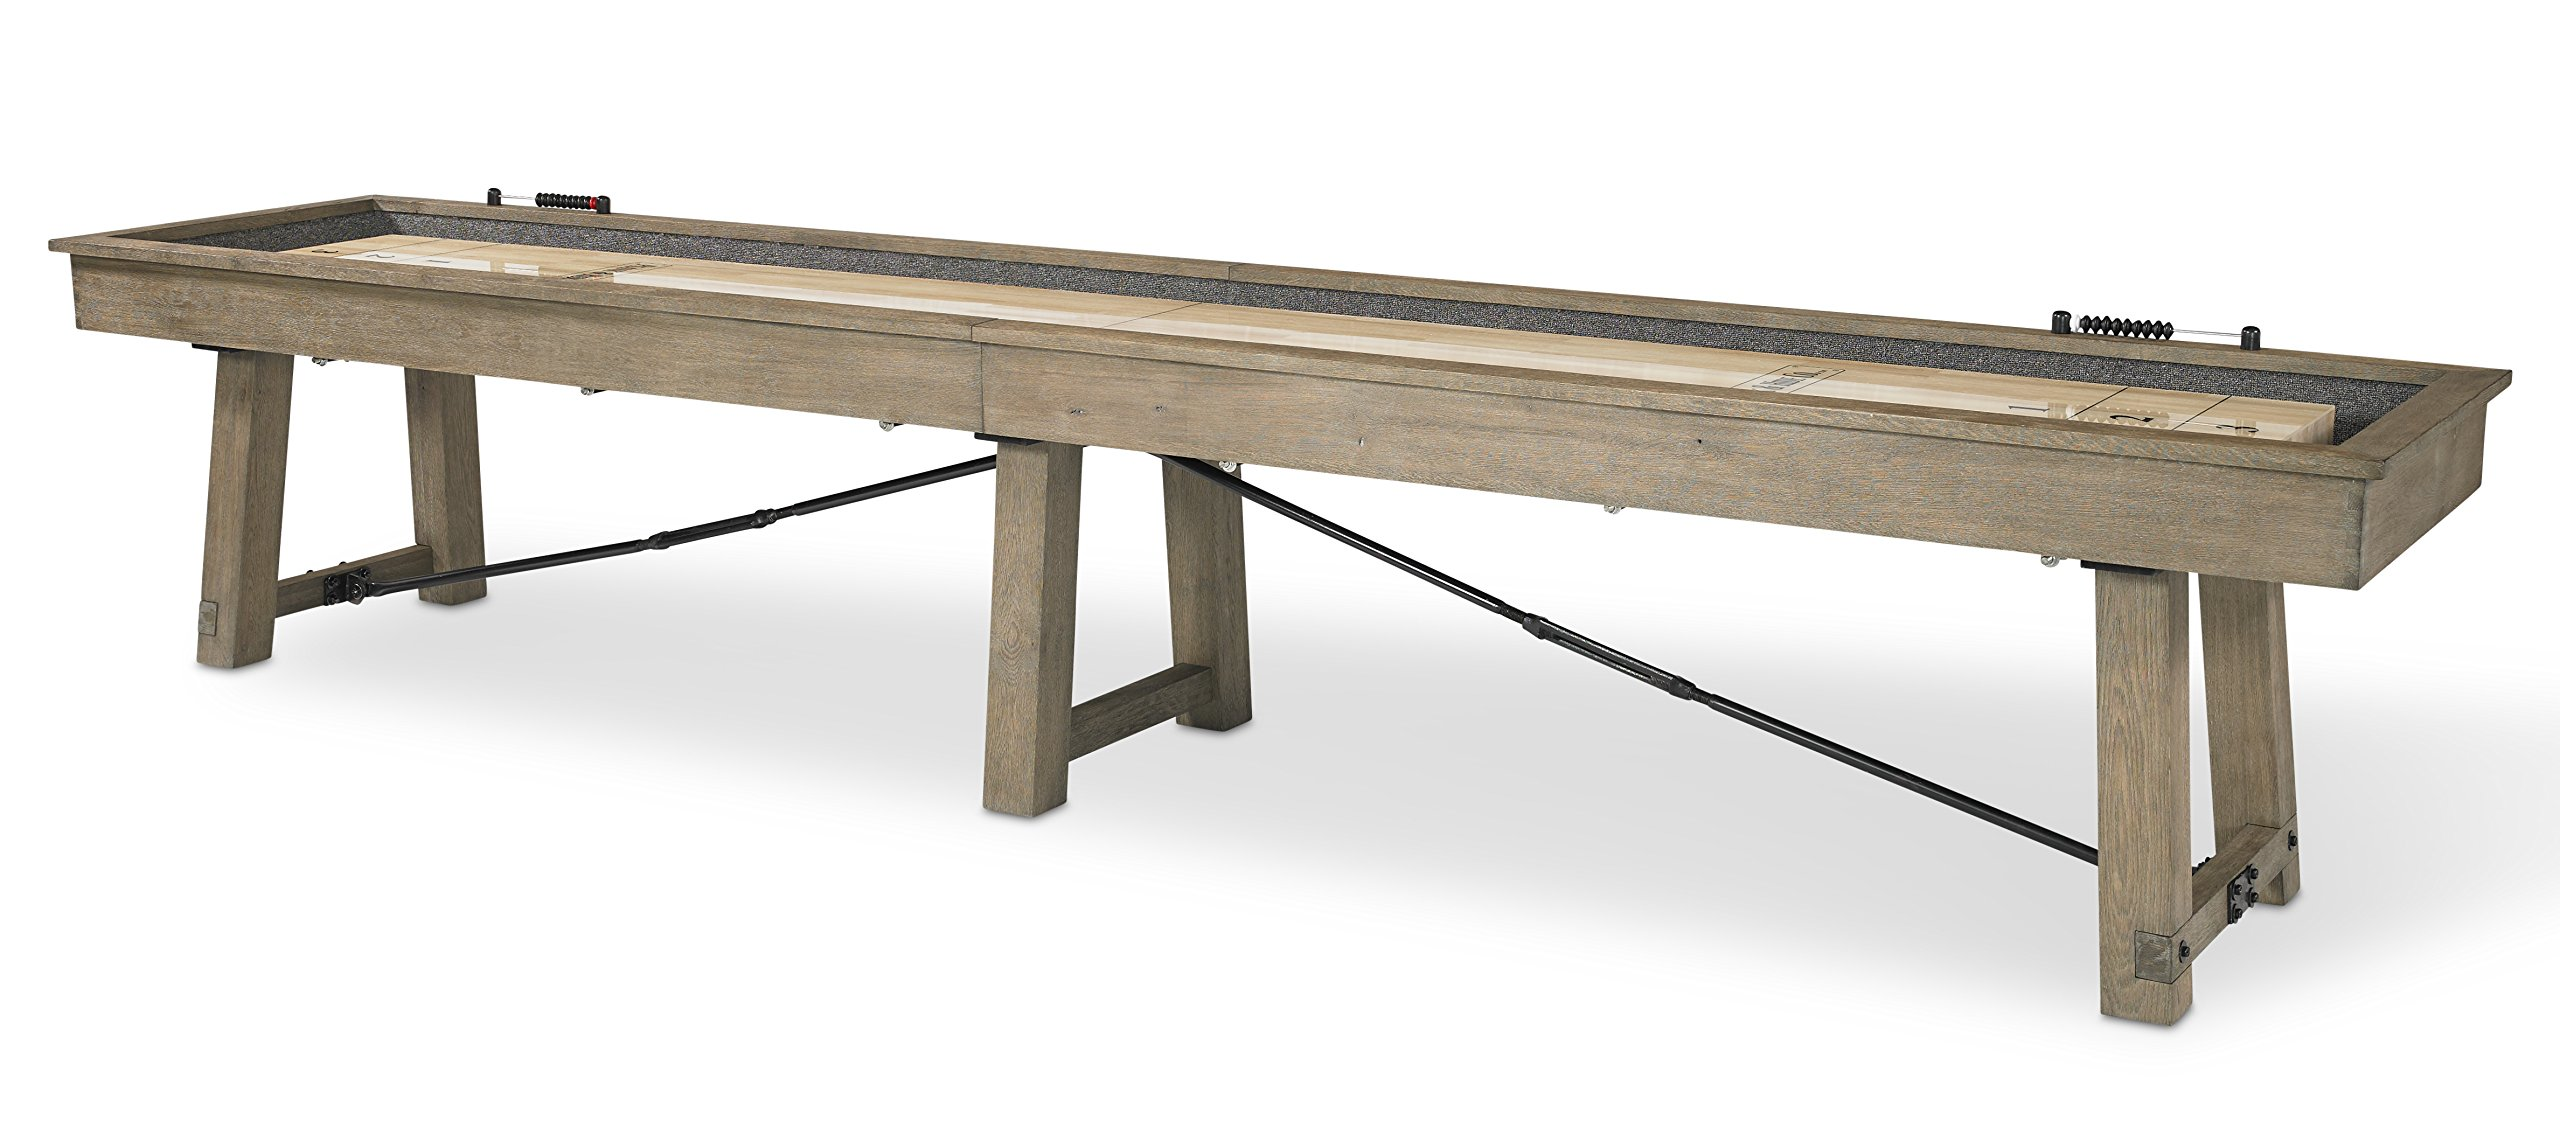 Plank and Hide Isaac Shuffleboard Table Gaming Table for Home & Hotel - Solid Oak - 12' / 14'-Installation Included by Plank and Hide